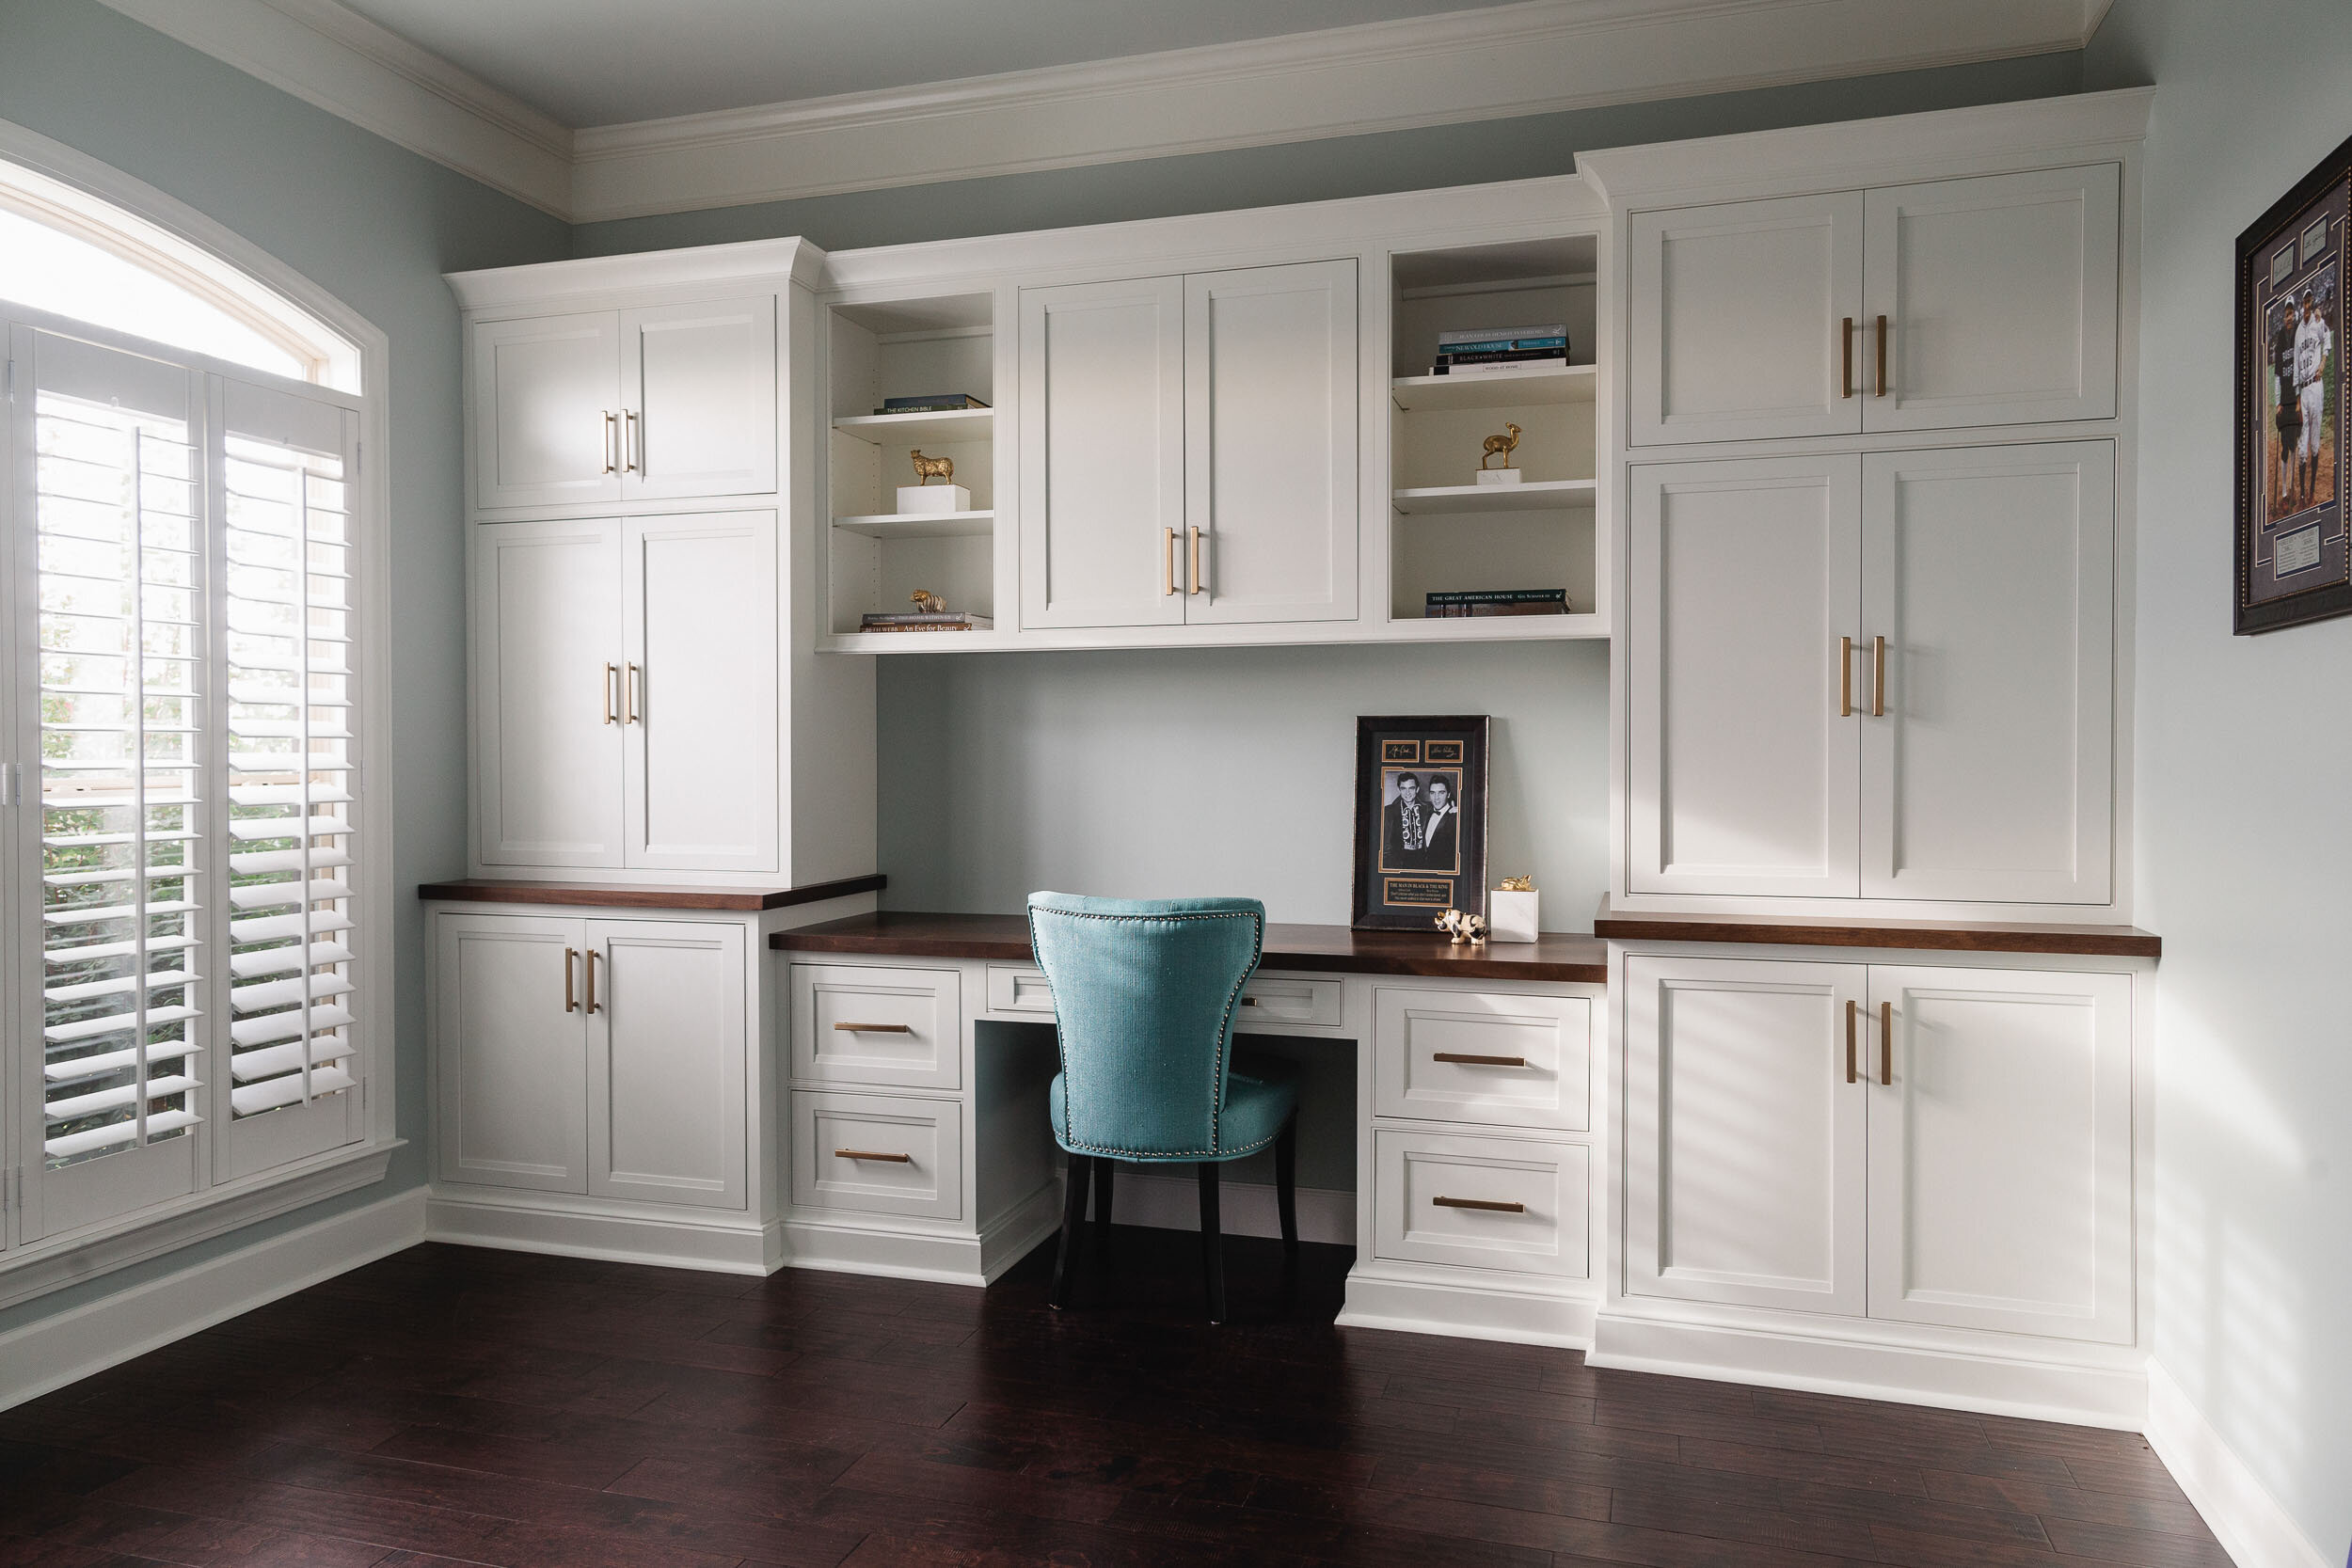 Are Floor To Ceiling Kitchen Cabinets, How To Install Stacked Kitchen Cabinets